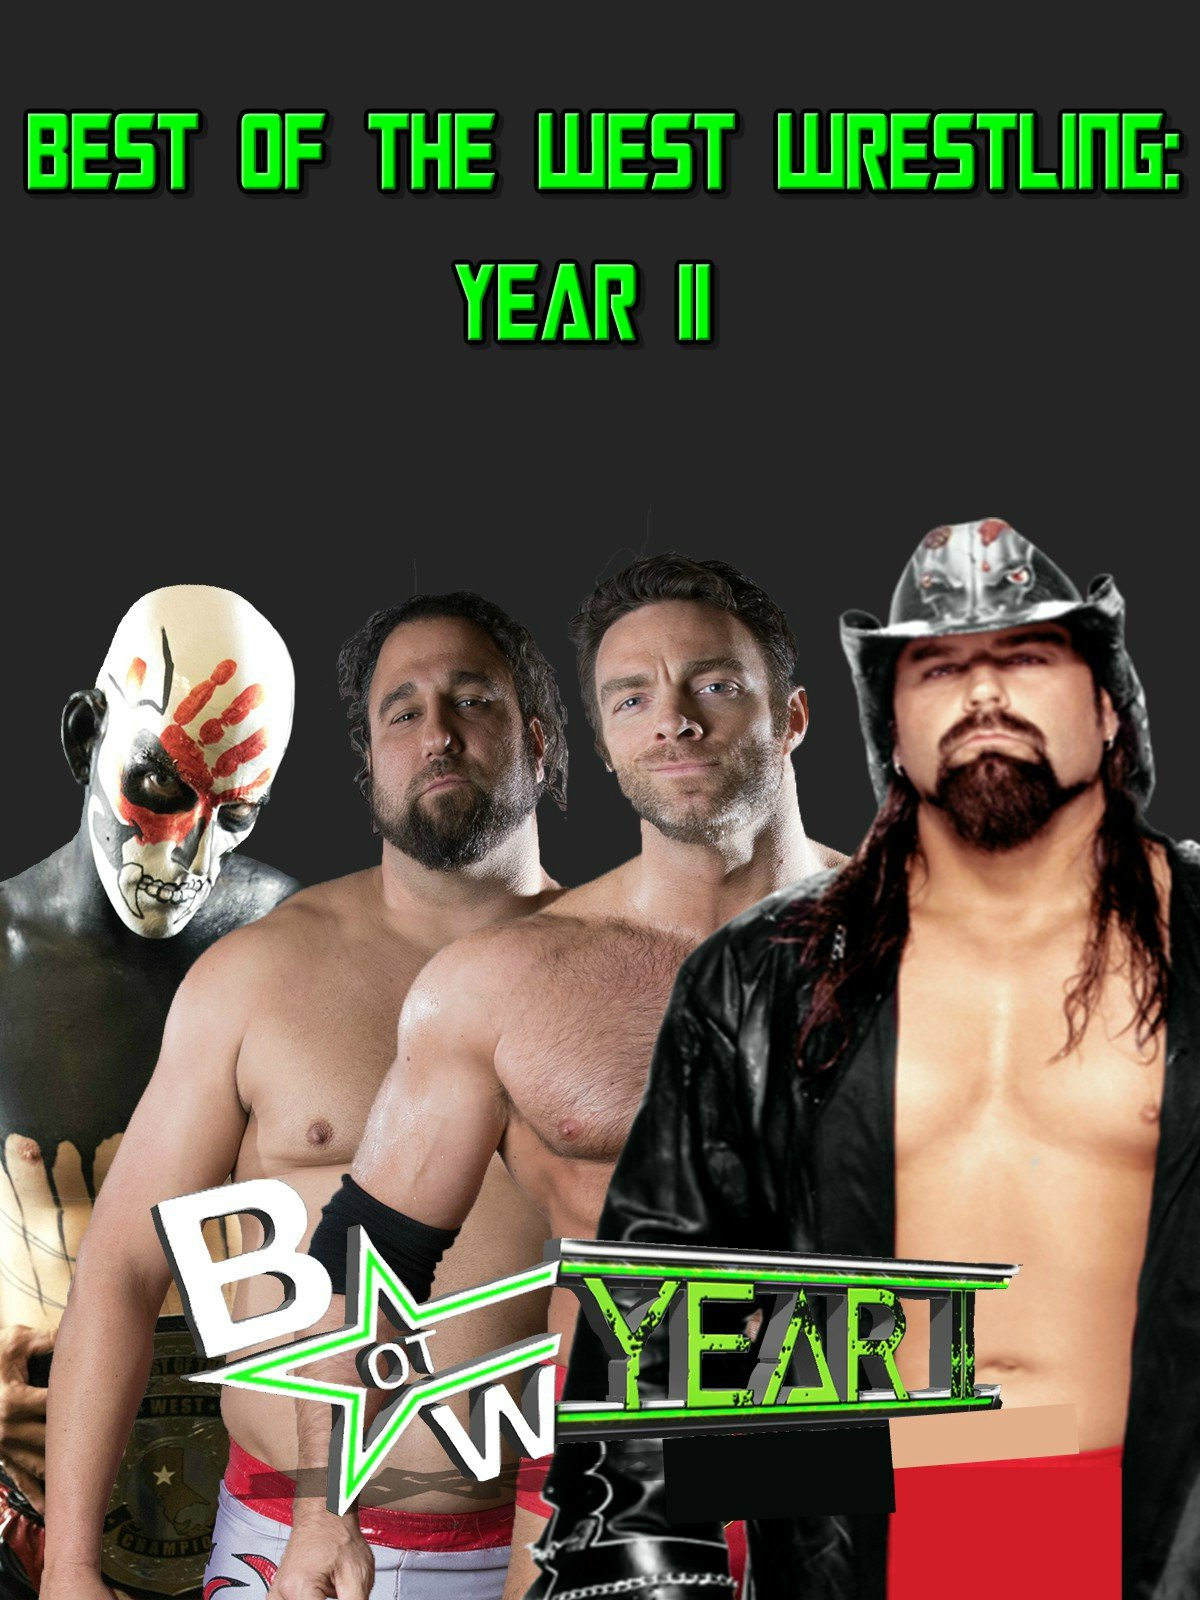 Best of the West Year II